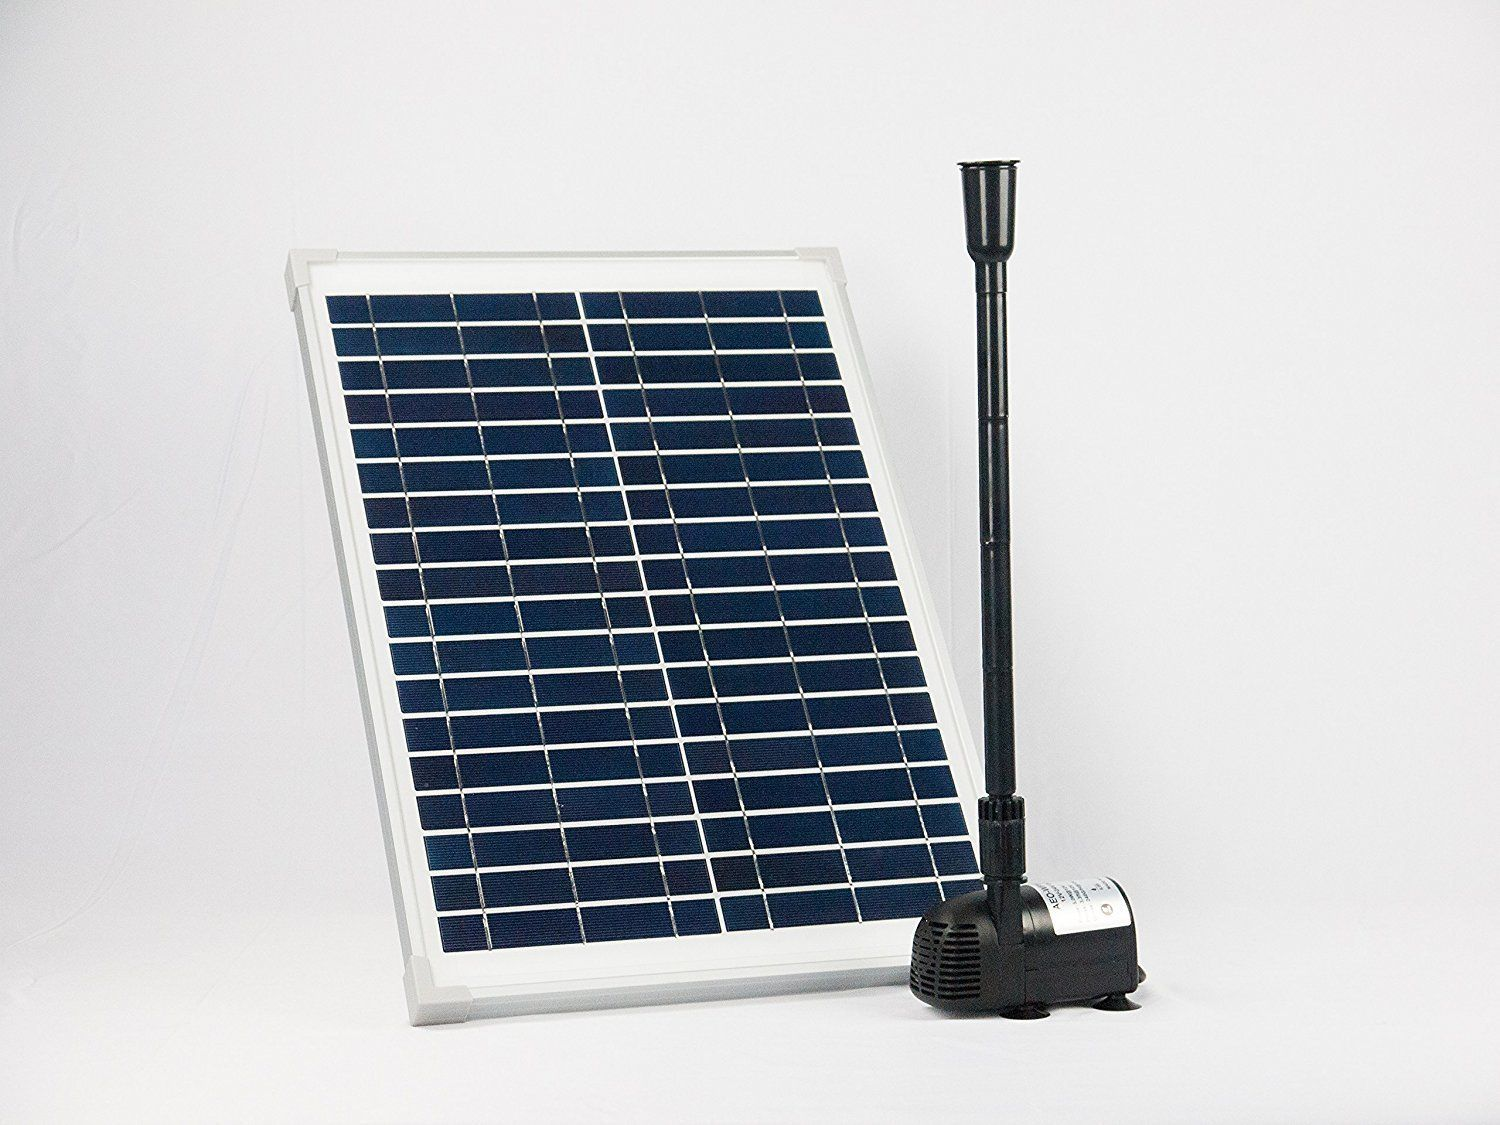 Solar Powered Water Fountain Kit Dcwaterpump Brushelsspump Solar Fountain Solar Panel Kits Solar Power Diy